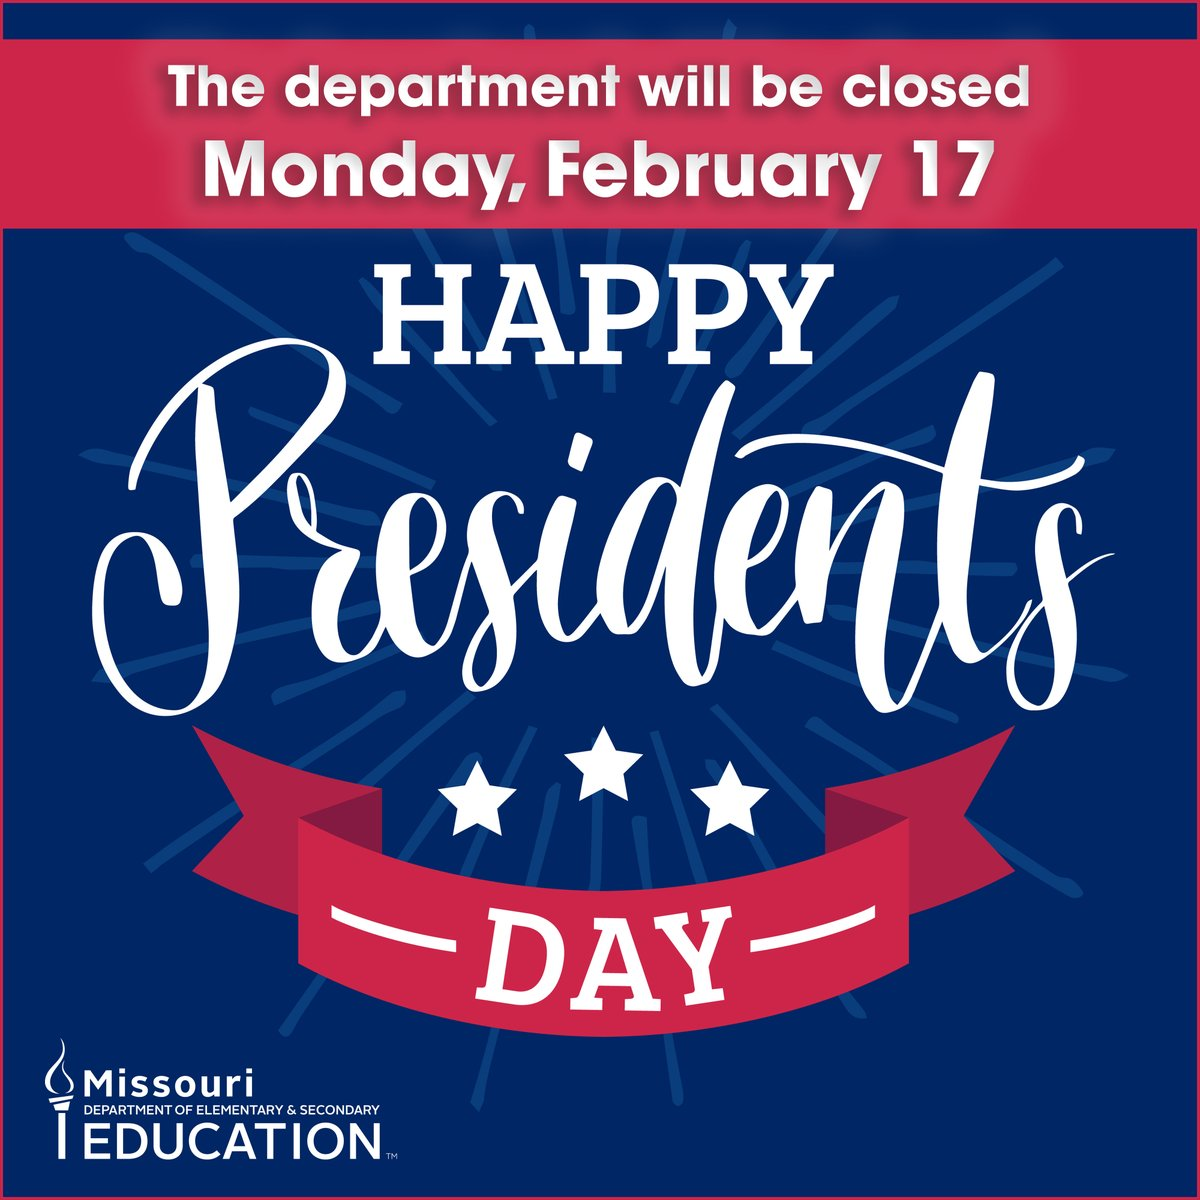 DESE offices will be closed on Monday, Feb. 17 in observance of the state holiday.